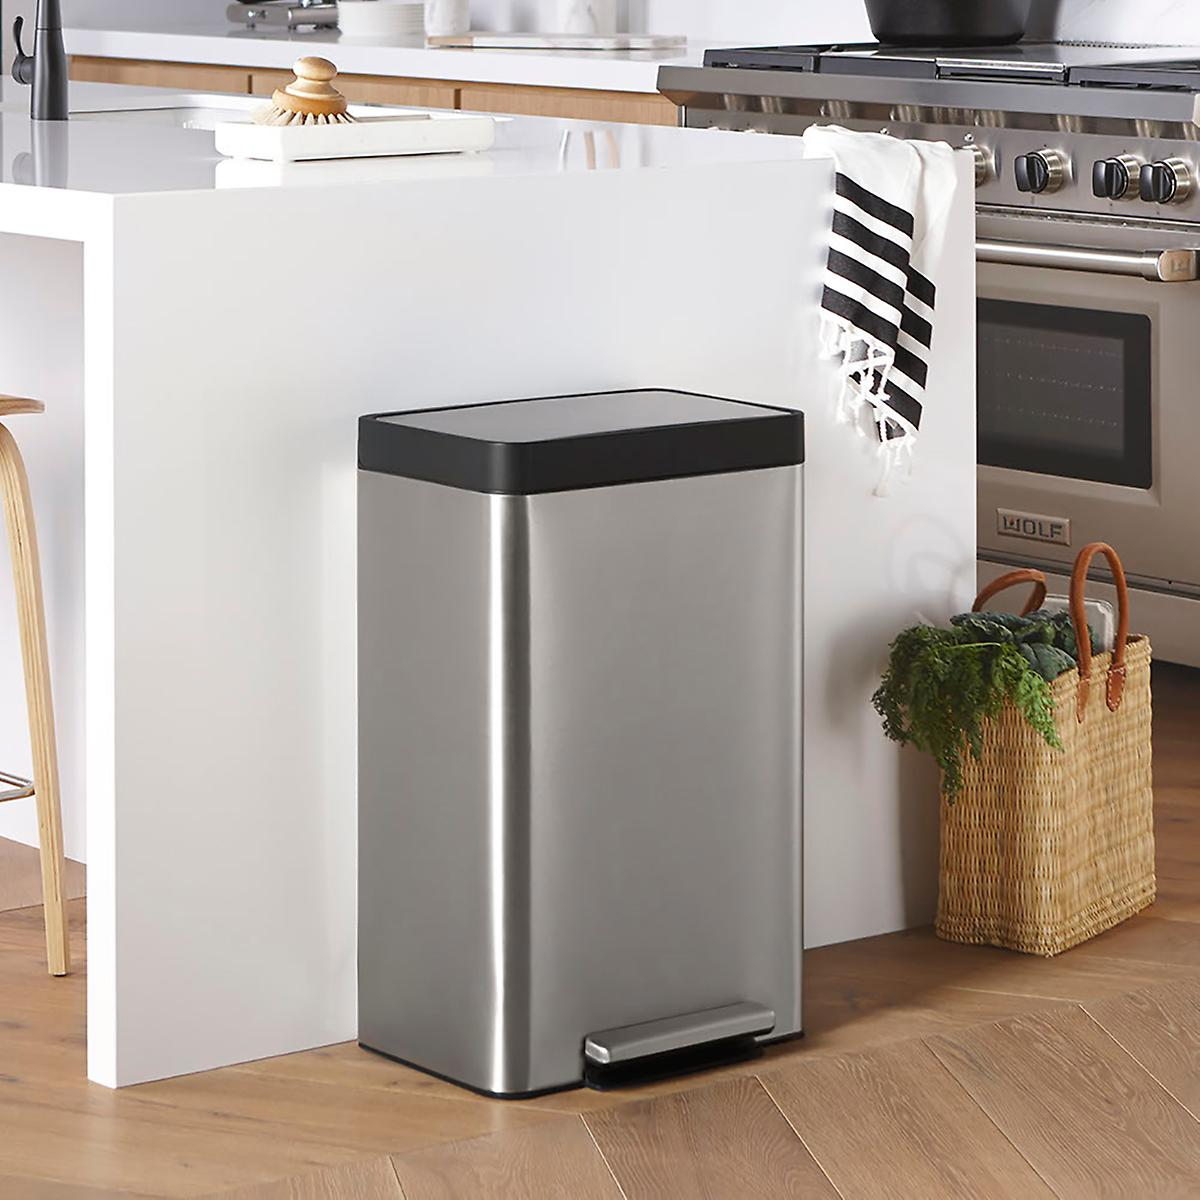 Kohler Stainless Steel 13 Gal Step Trash Can